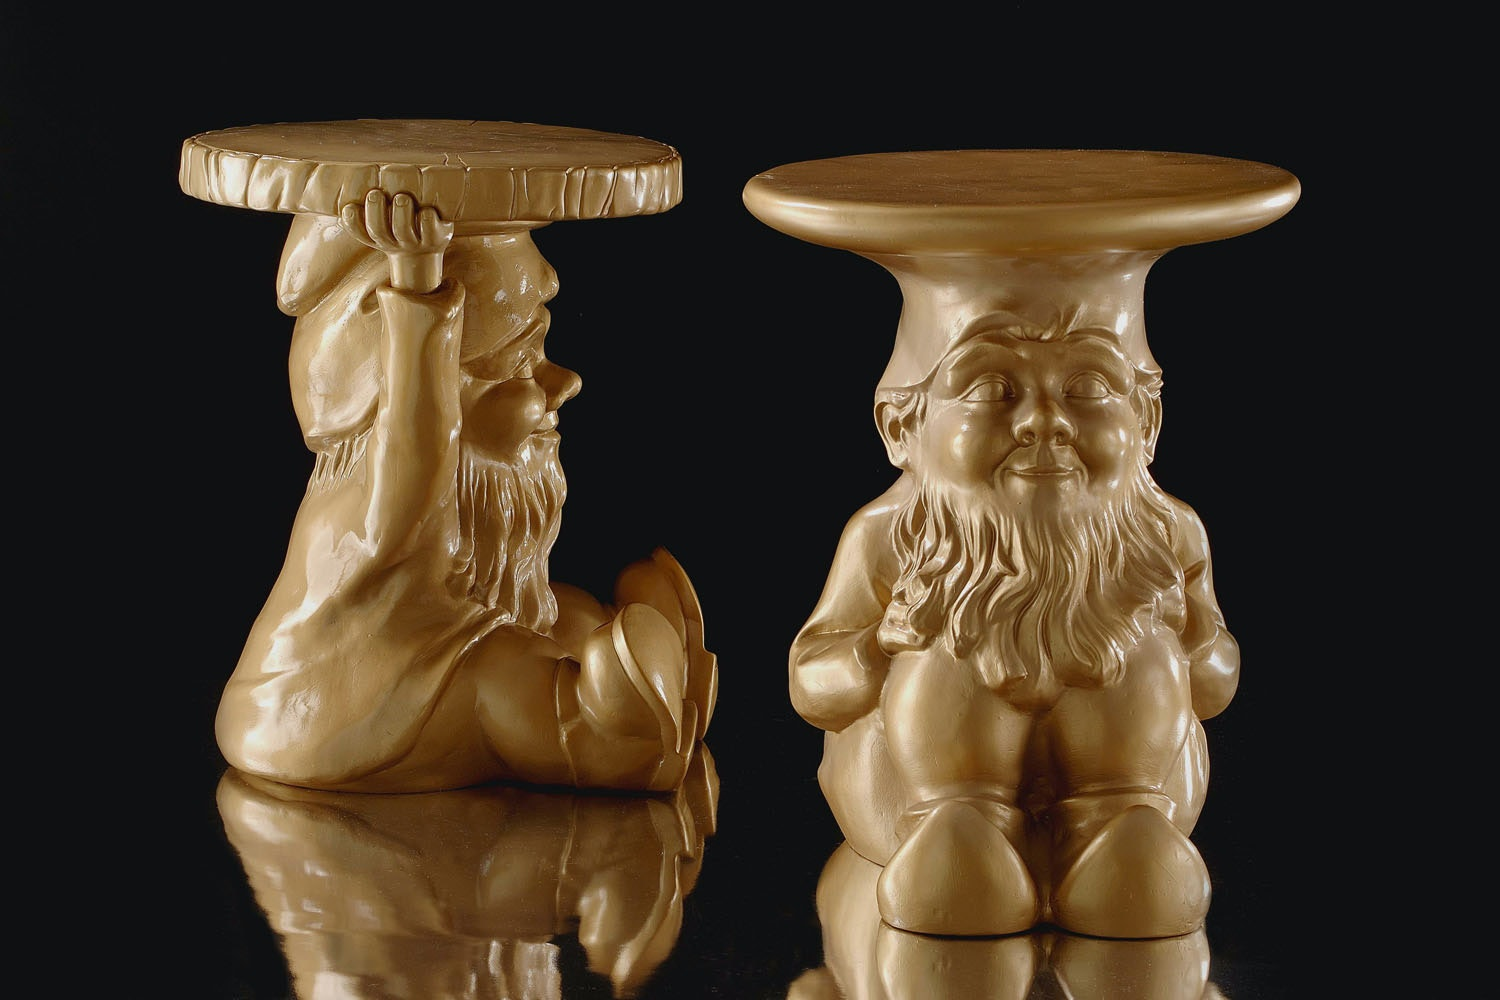 Gnomes Gold Stool by Philippe Starck for Kartell